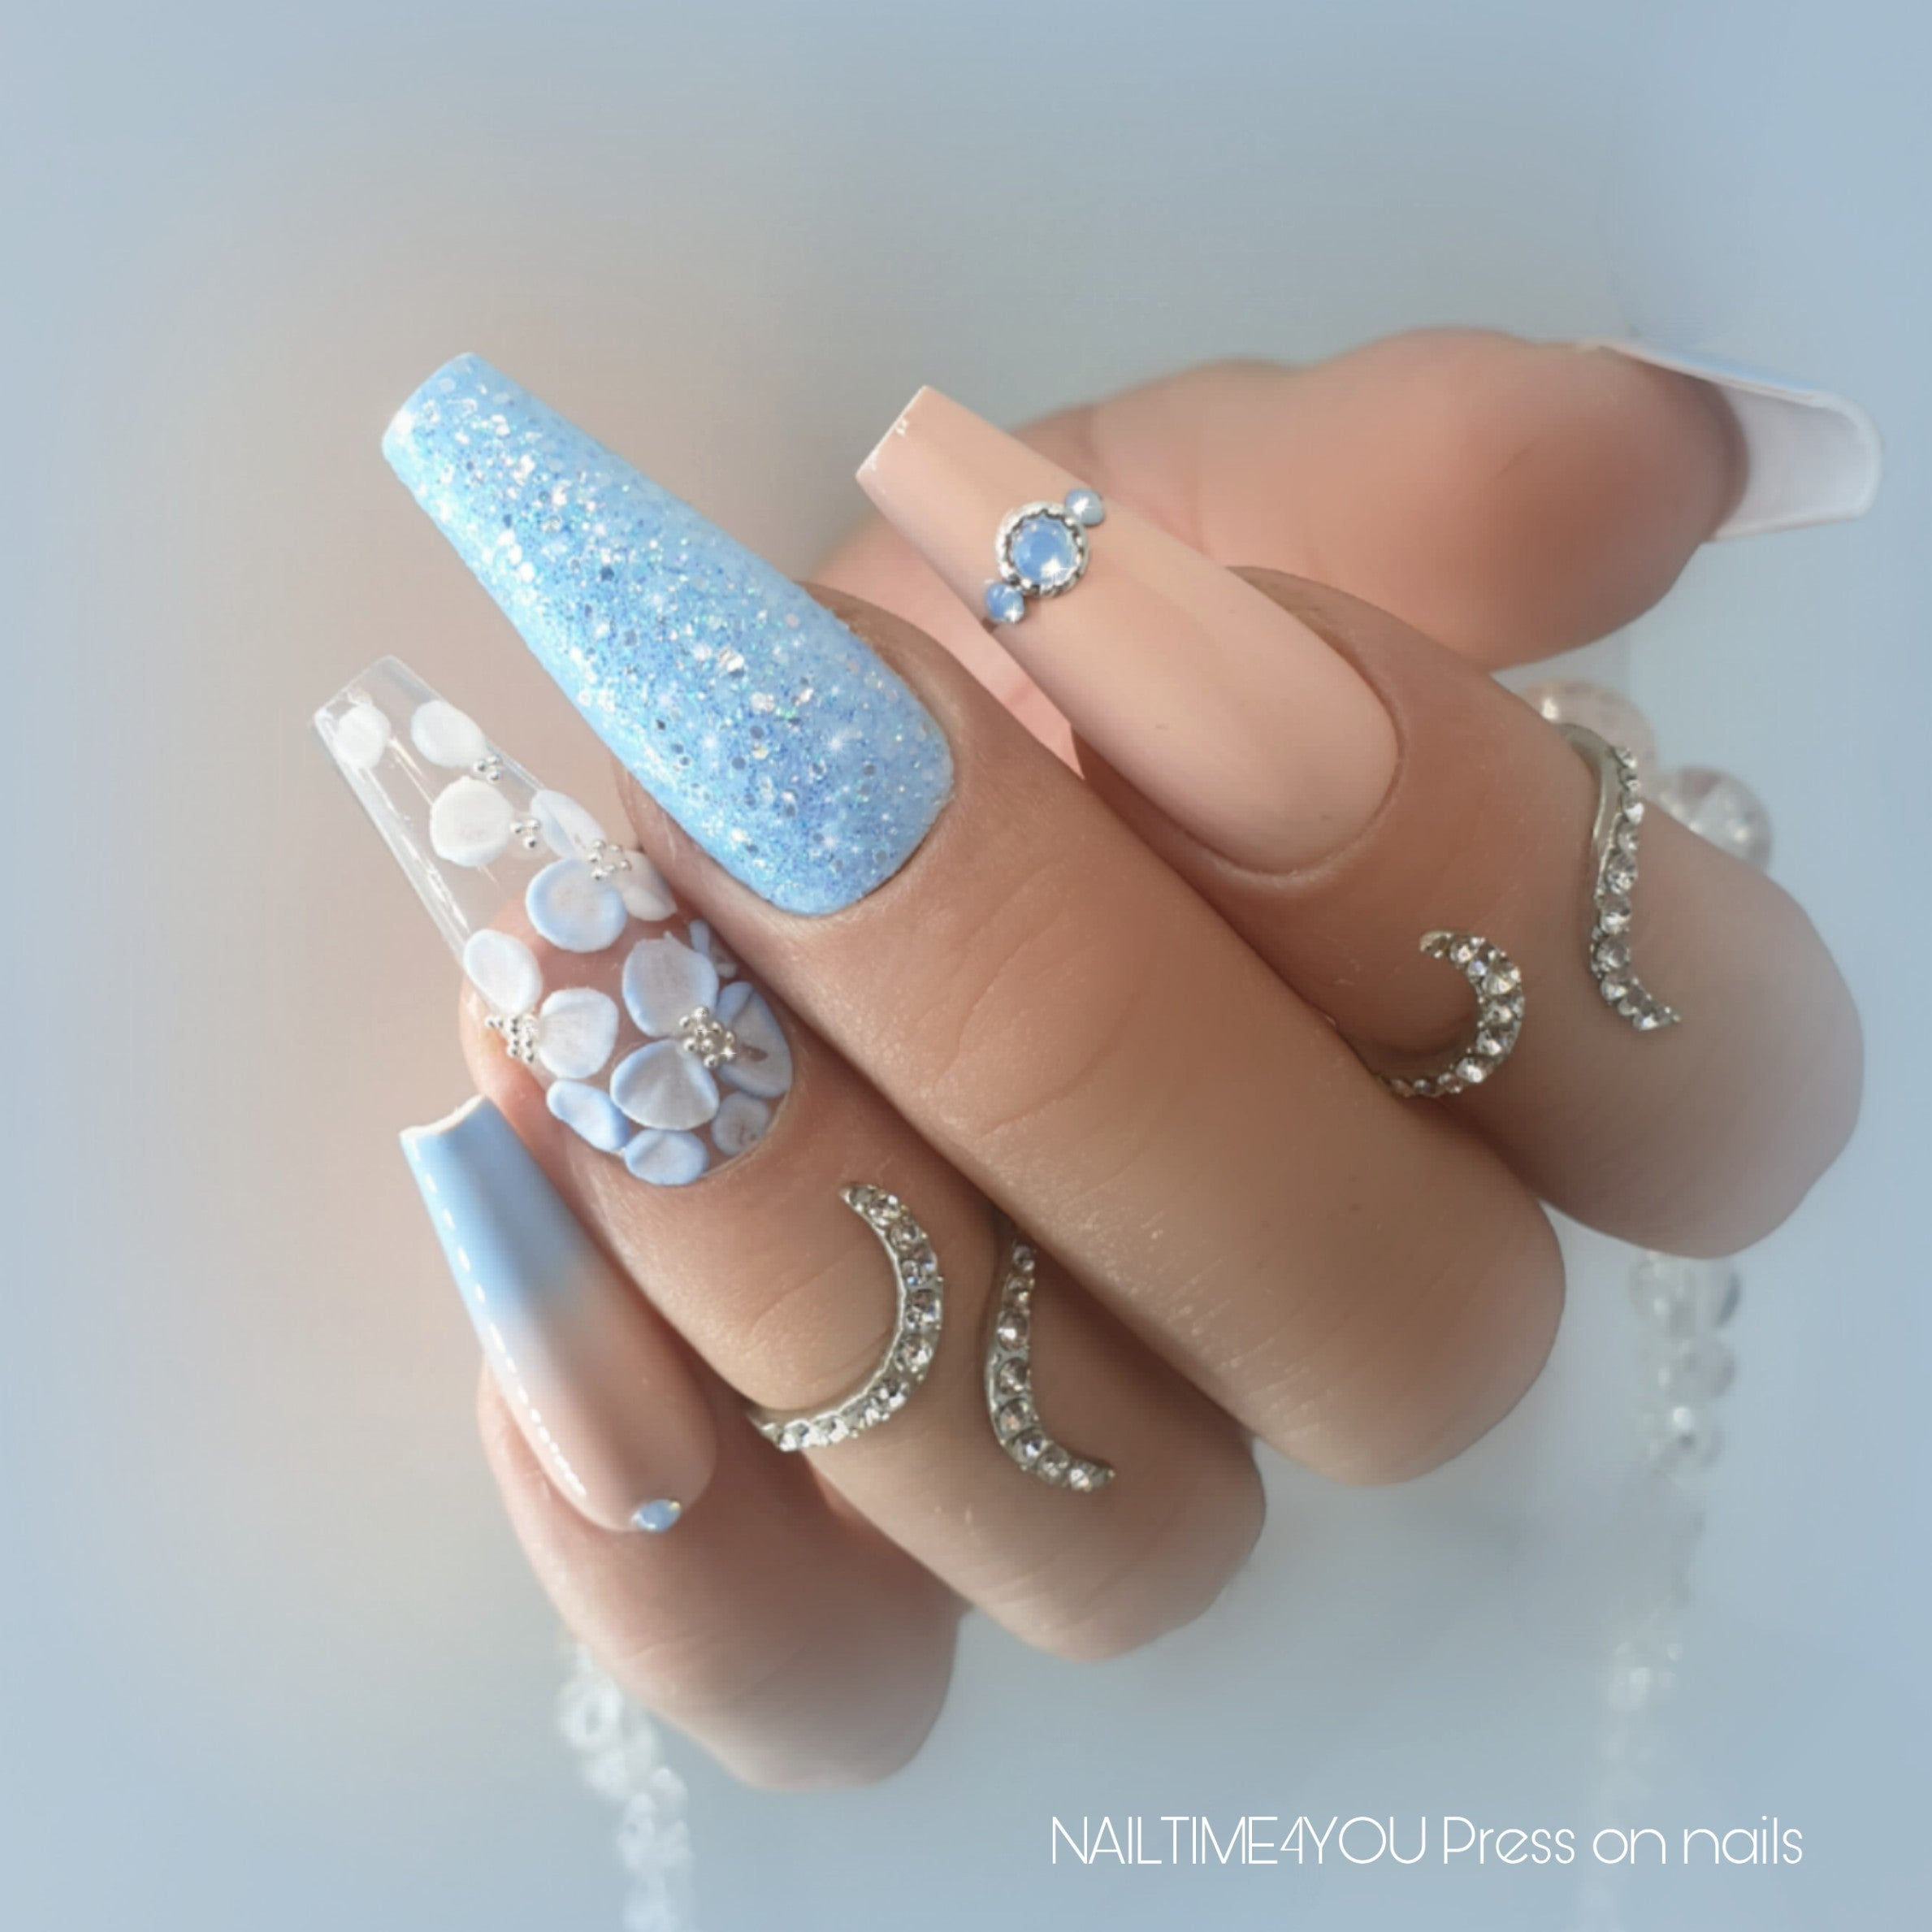 blue press on nails